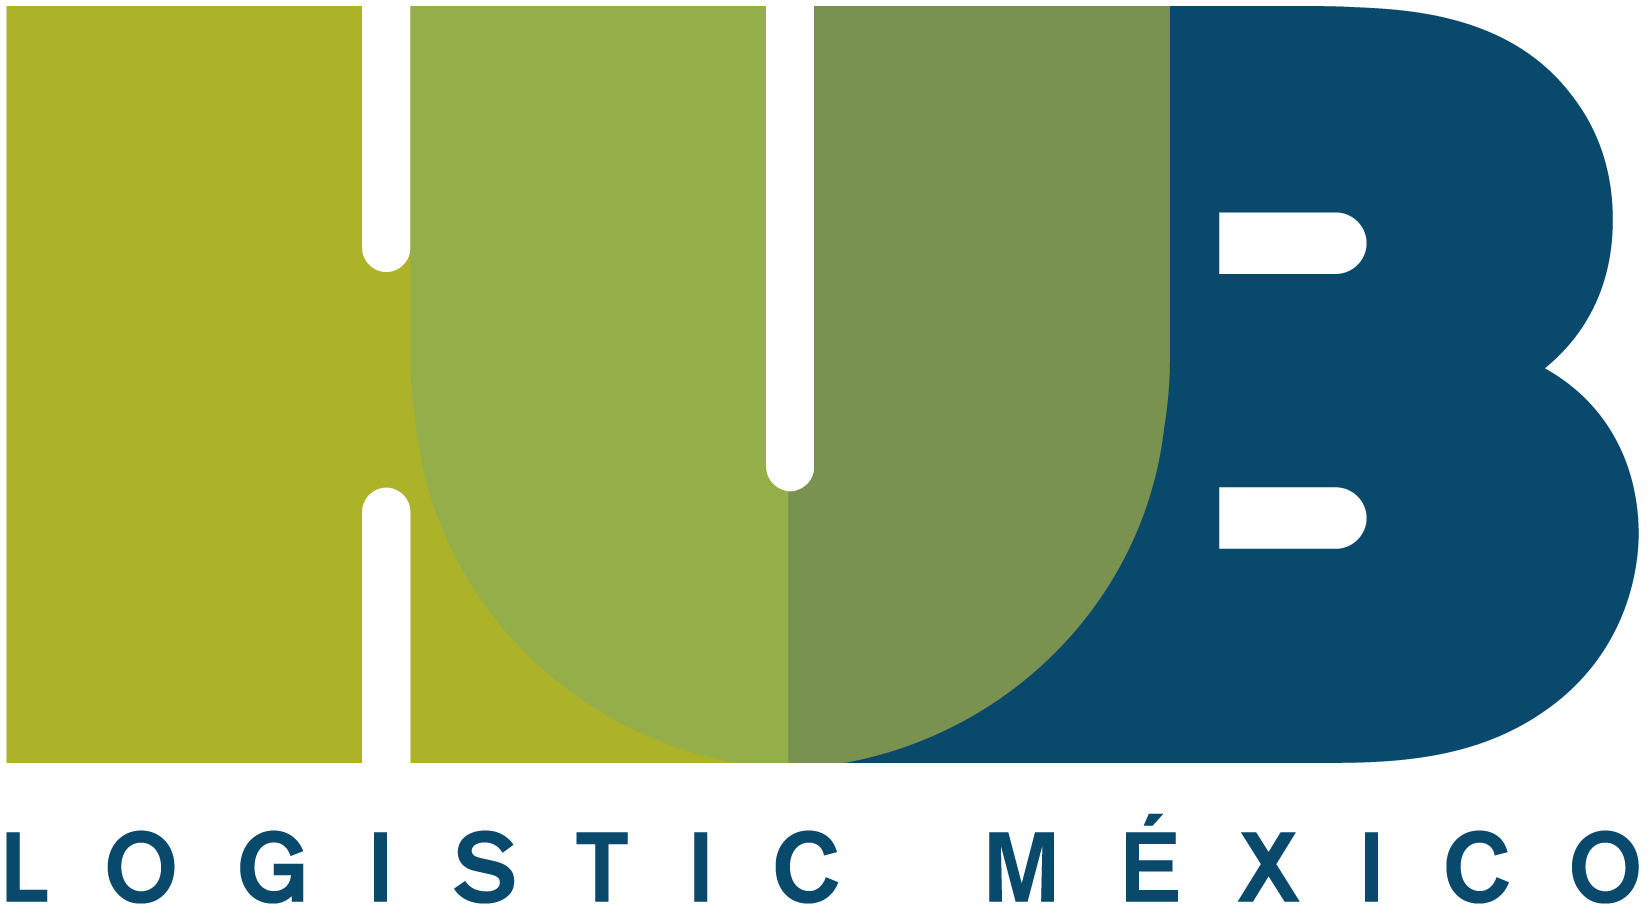 Hub logistic mexico logo